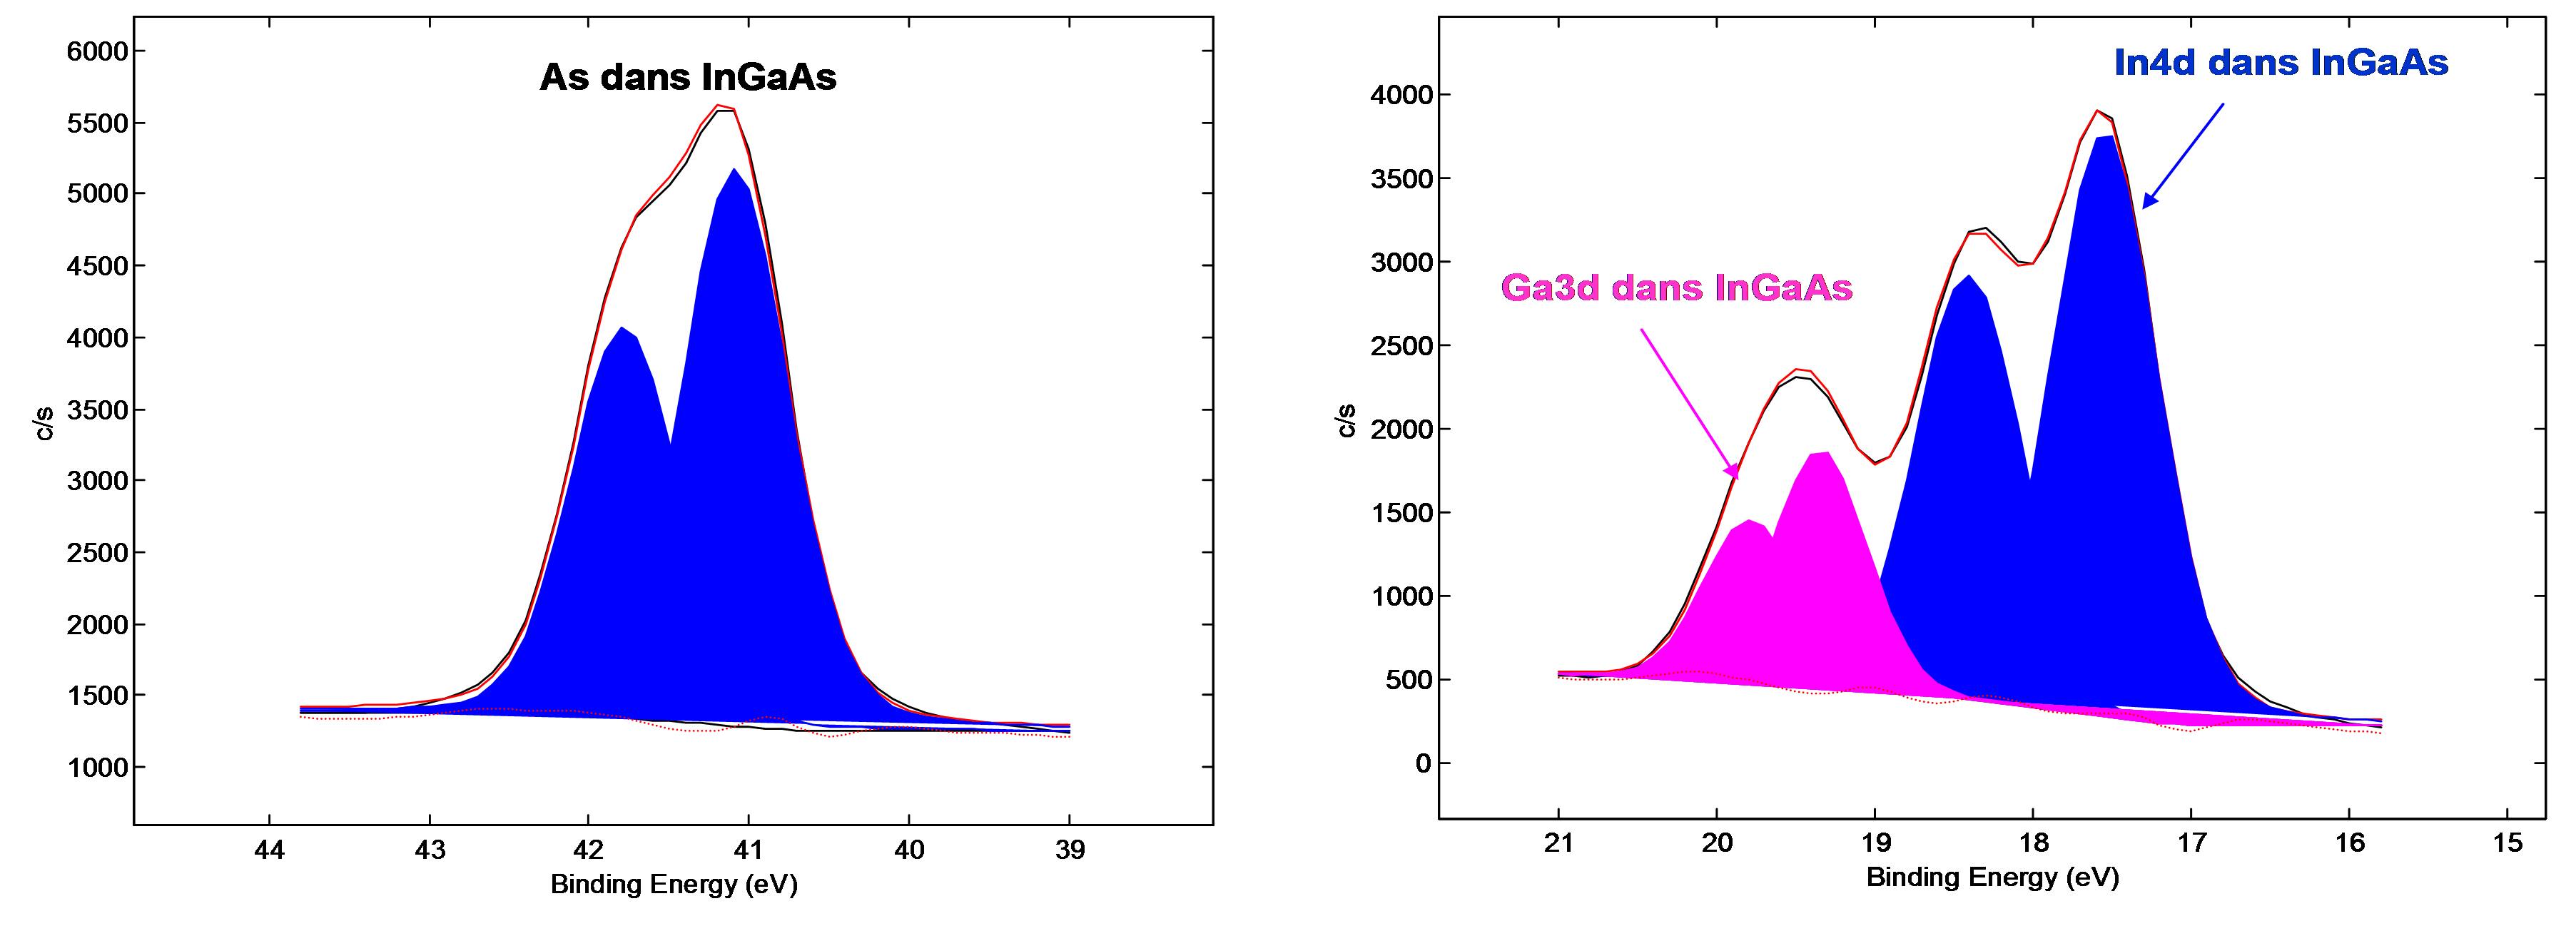 Figure 3: As3d (left) and Ga3d/In4d (right) XPS spectra recorded after ALD oxide deposition on InGaAs in optimized conditions. Oxide related XPS peaks have disappeared.